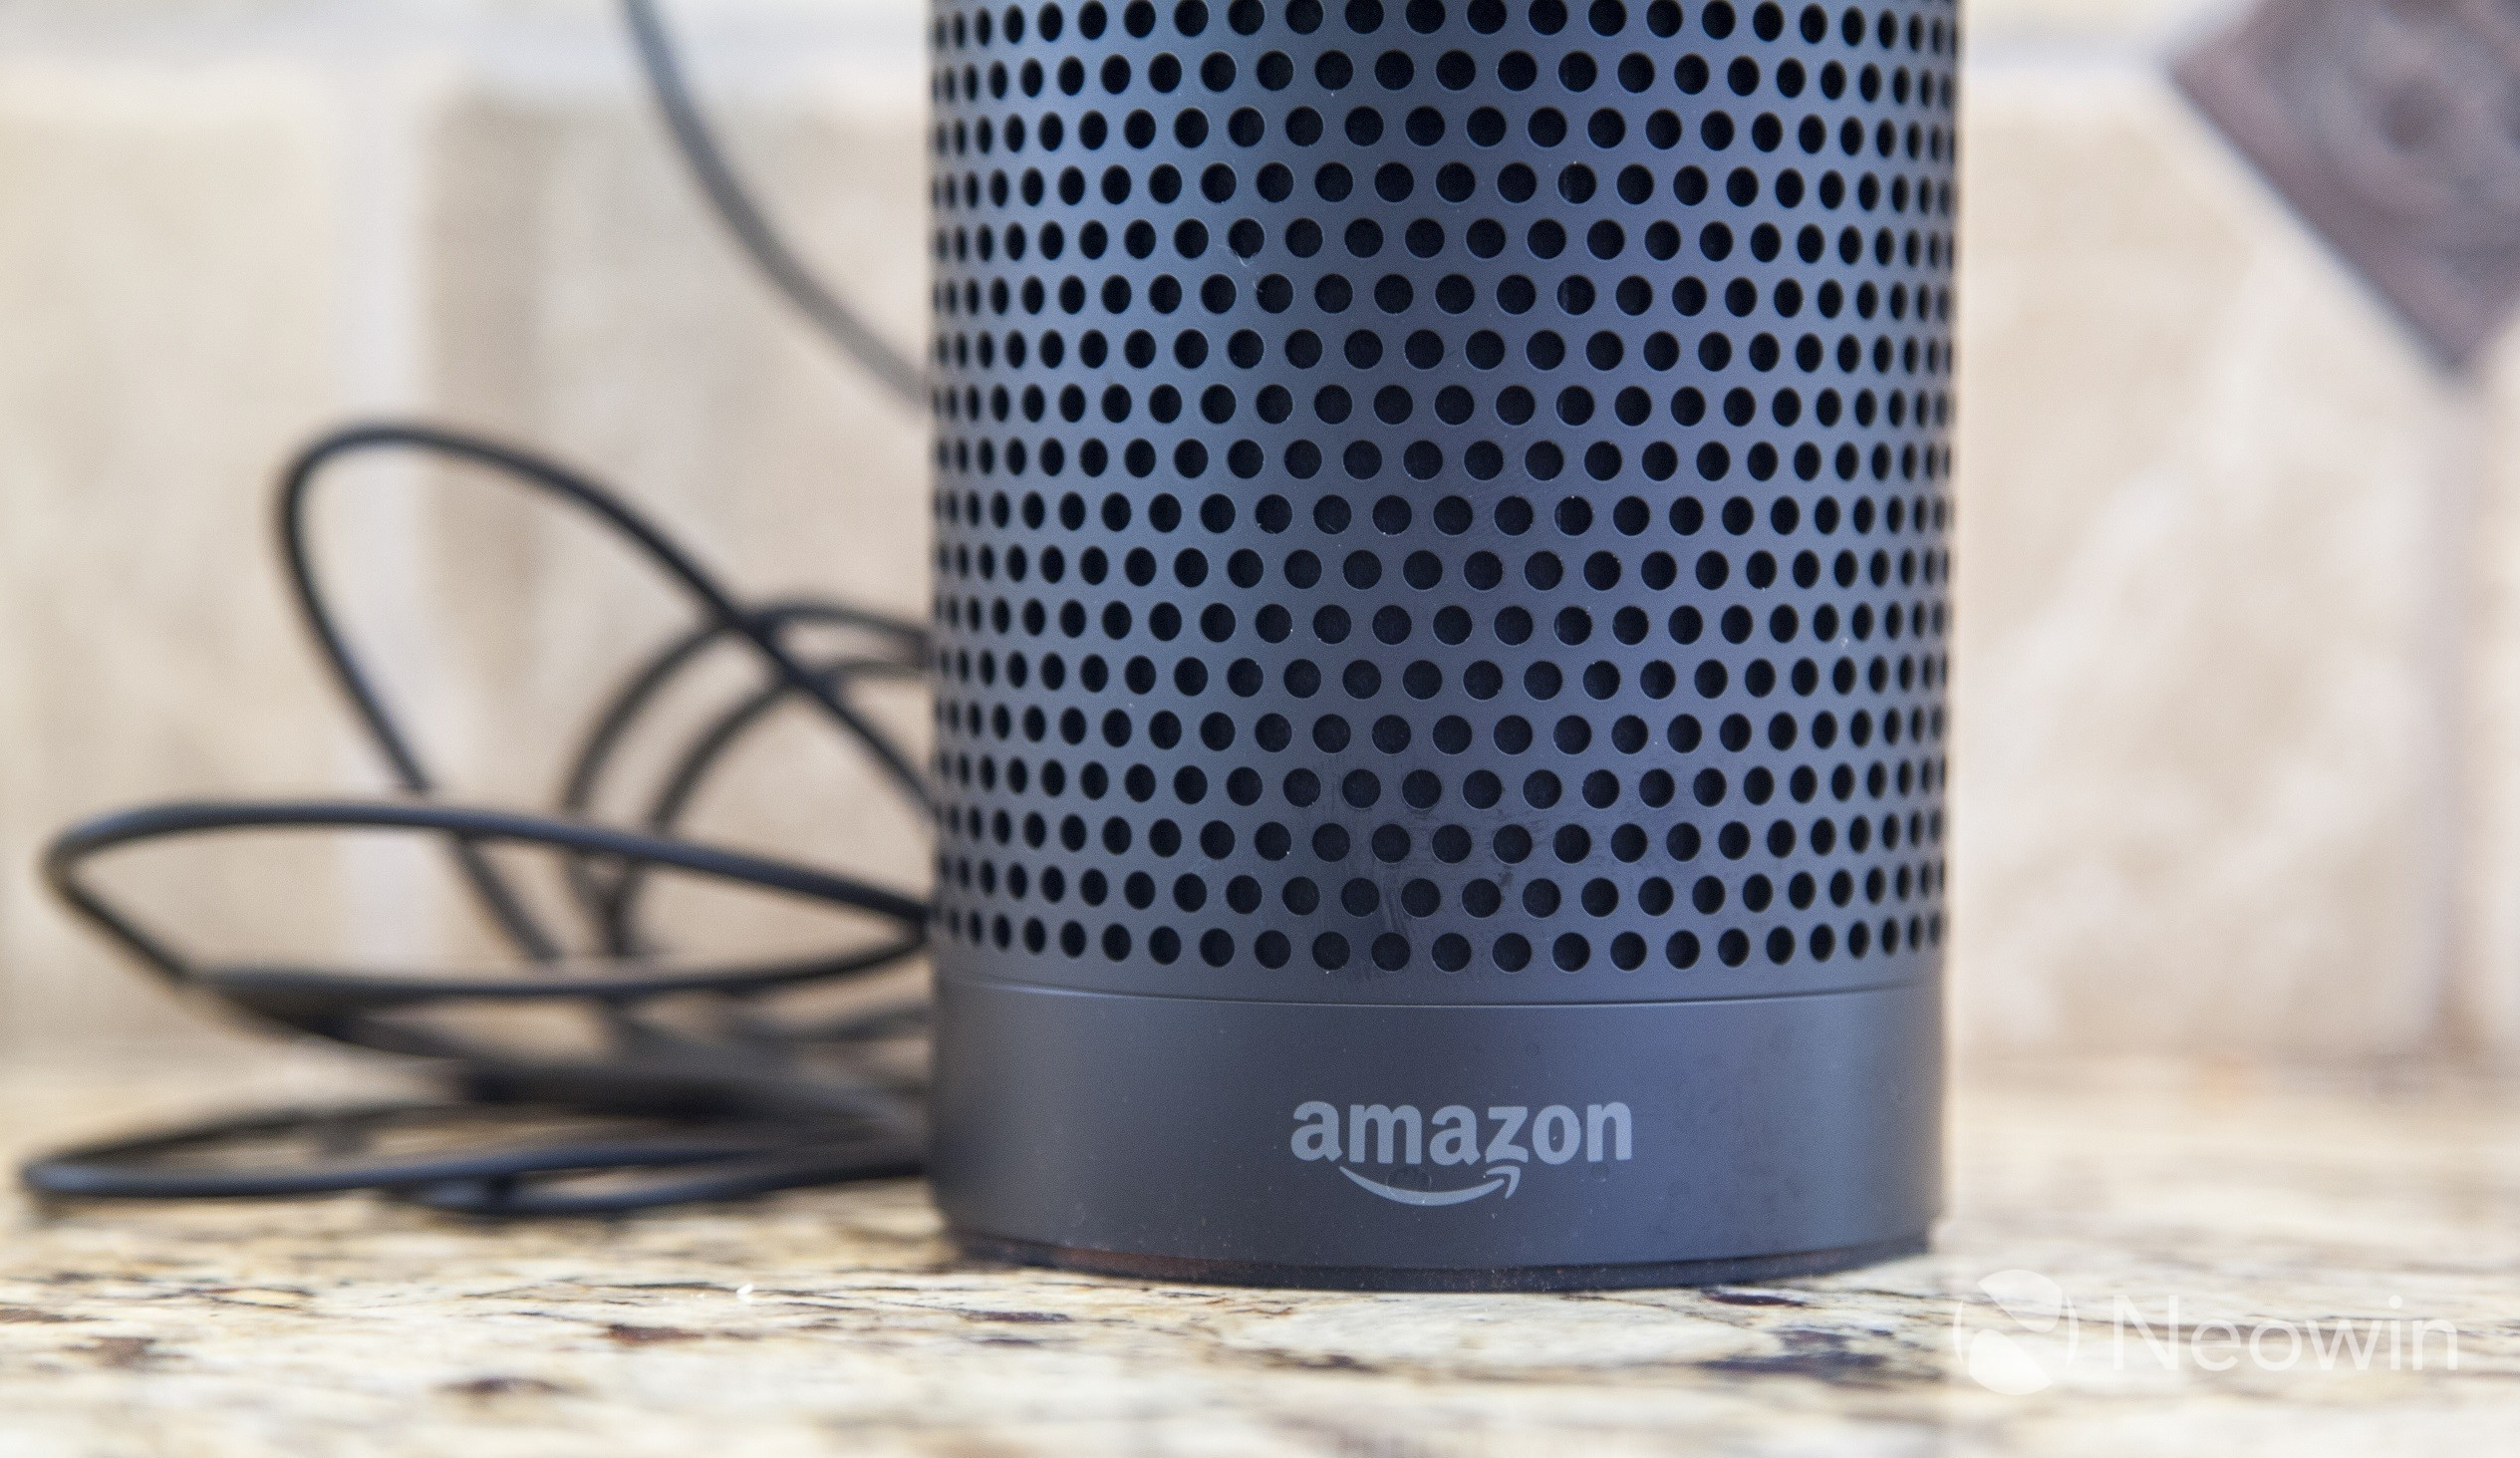 Amazon to launch Alexa-powered microwave, amplifier, subwoofer, and more